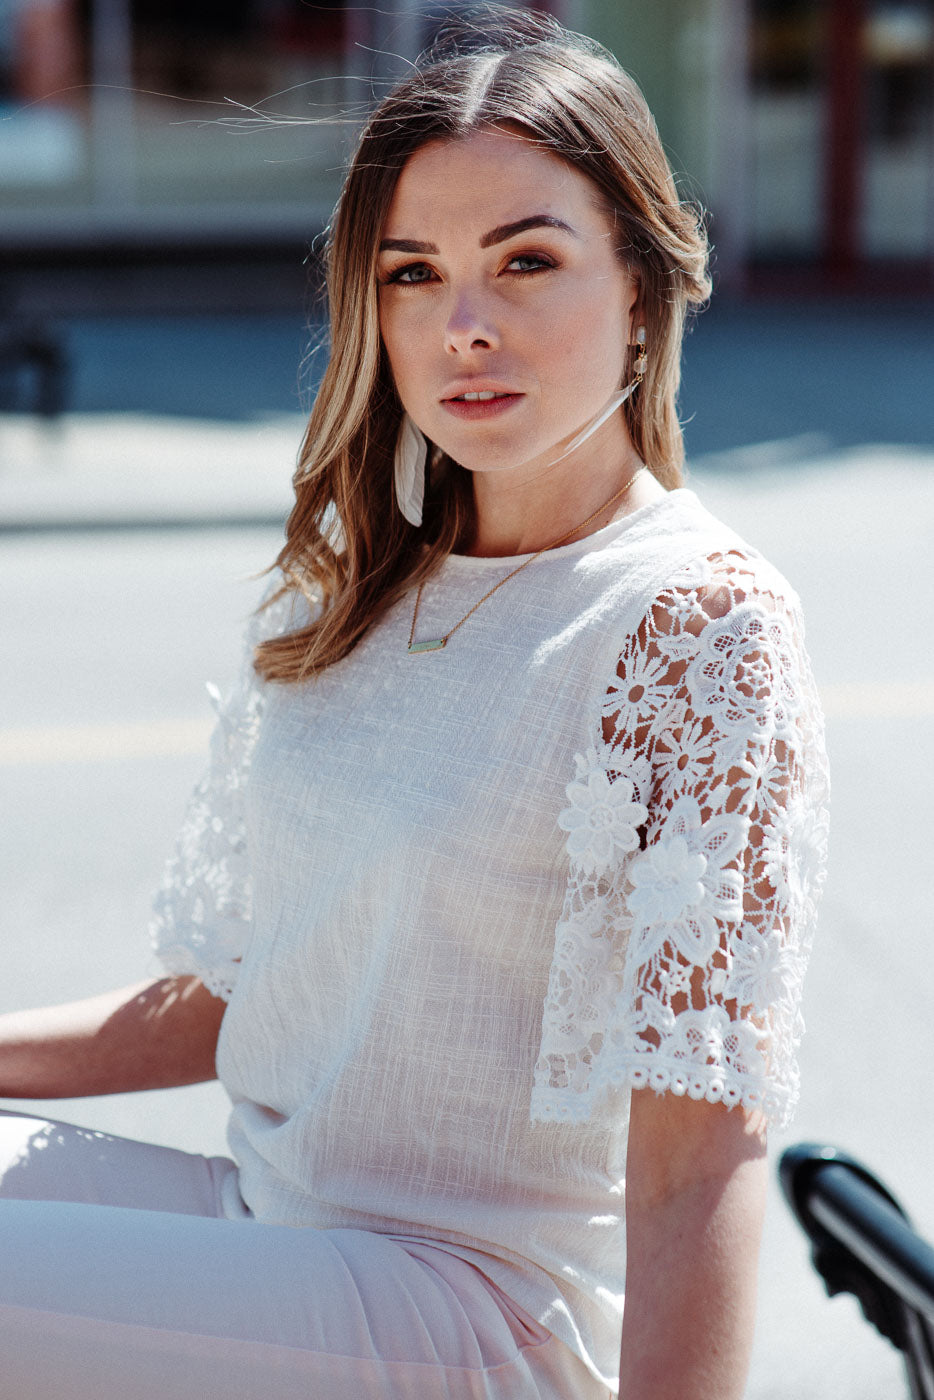 FLASH SALE / Calla Lily Crochet Top in Ivory